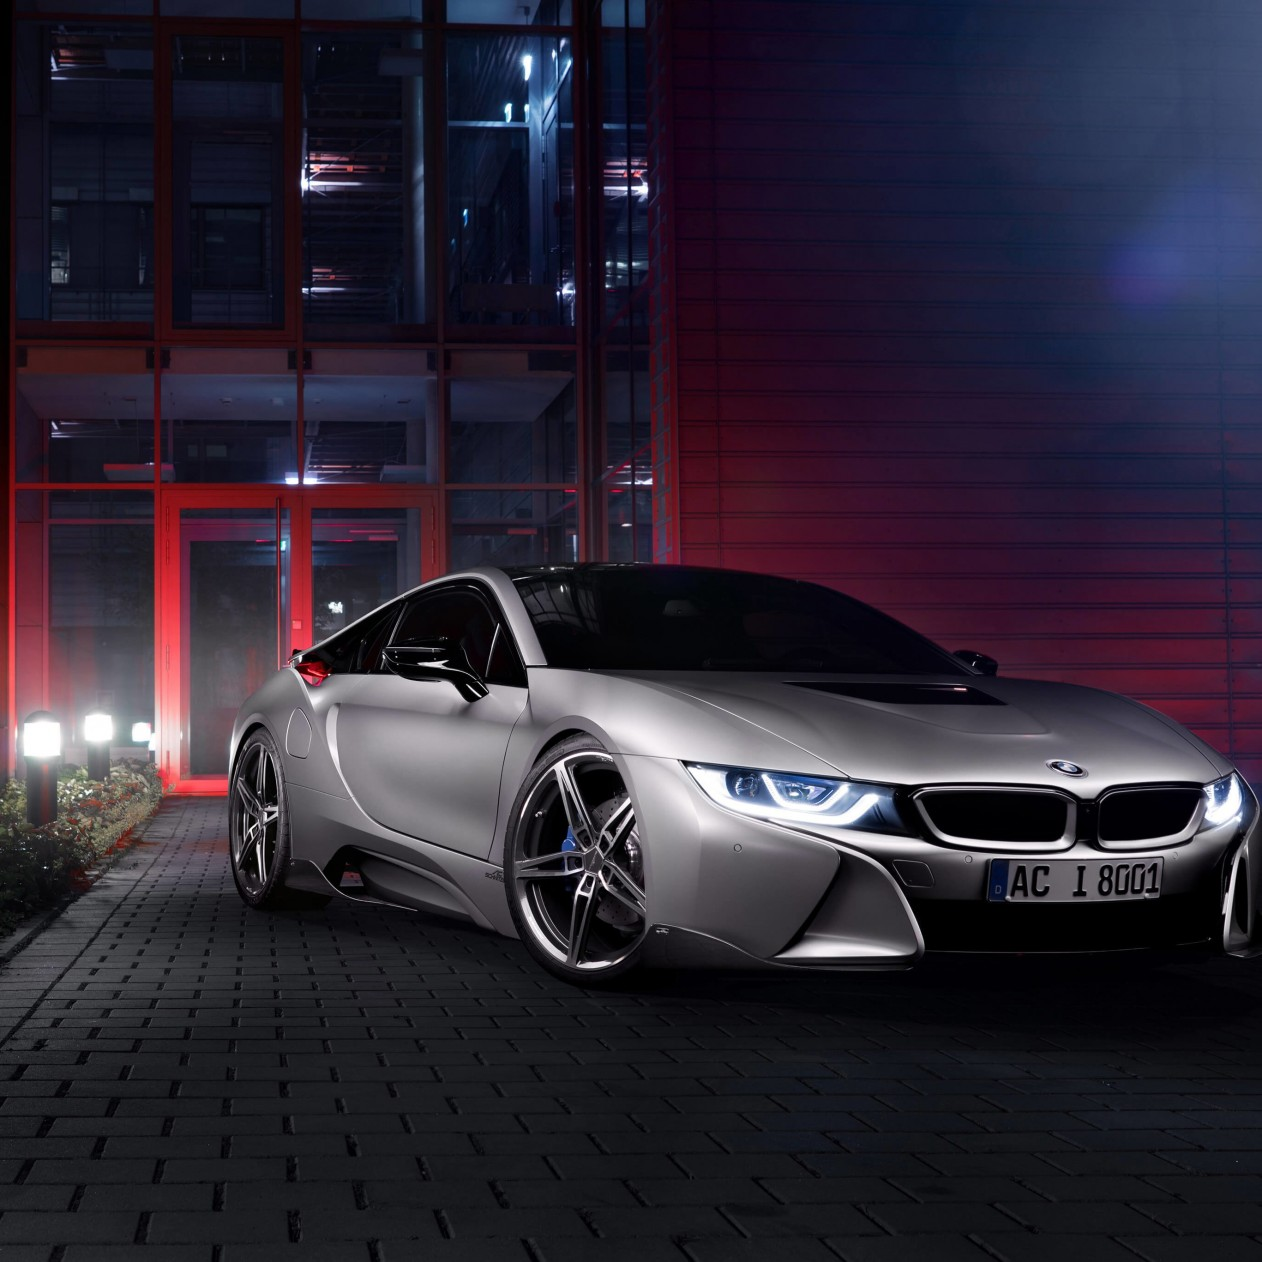 BMW i8 designed by AC Schnitzer Wallpaper for Apple iPad mini